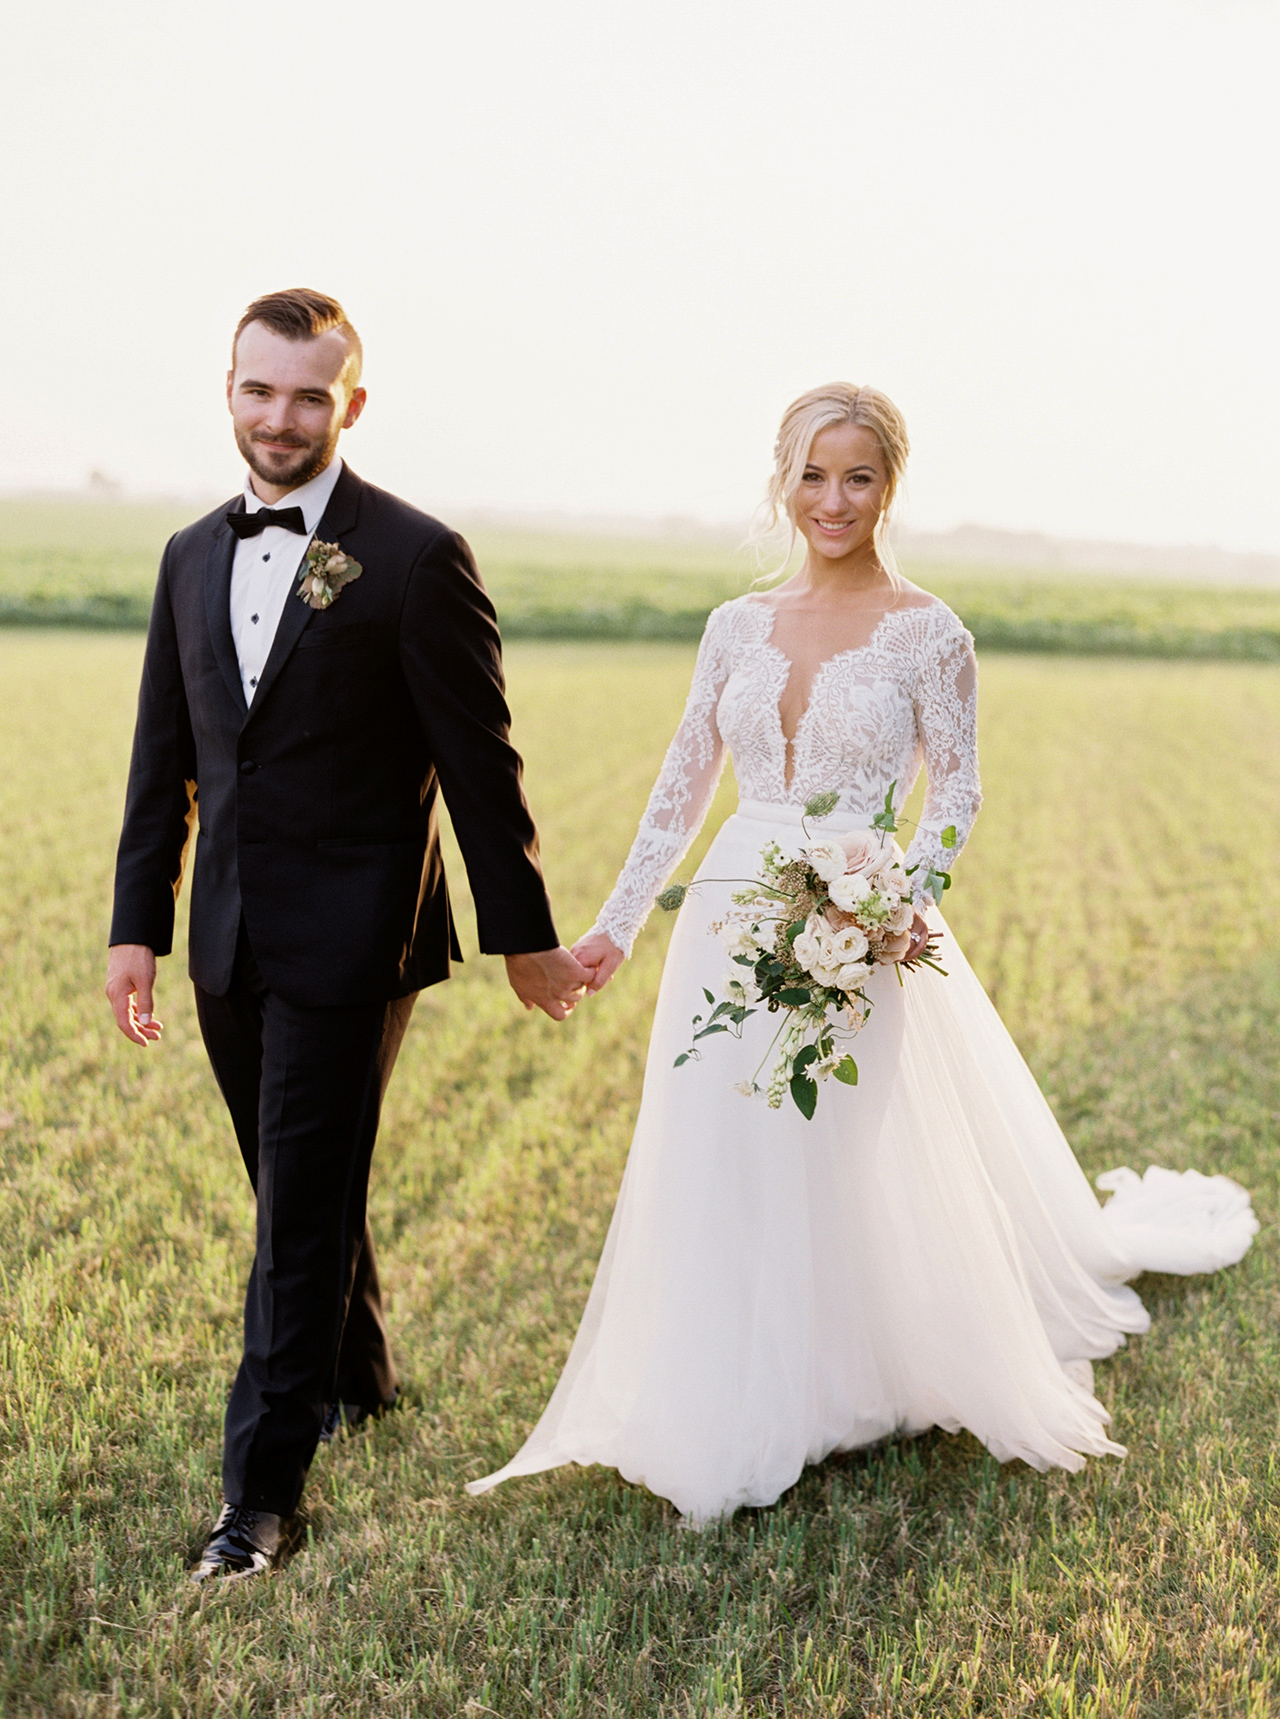 bride groom walking outdoors grass field